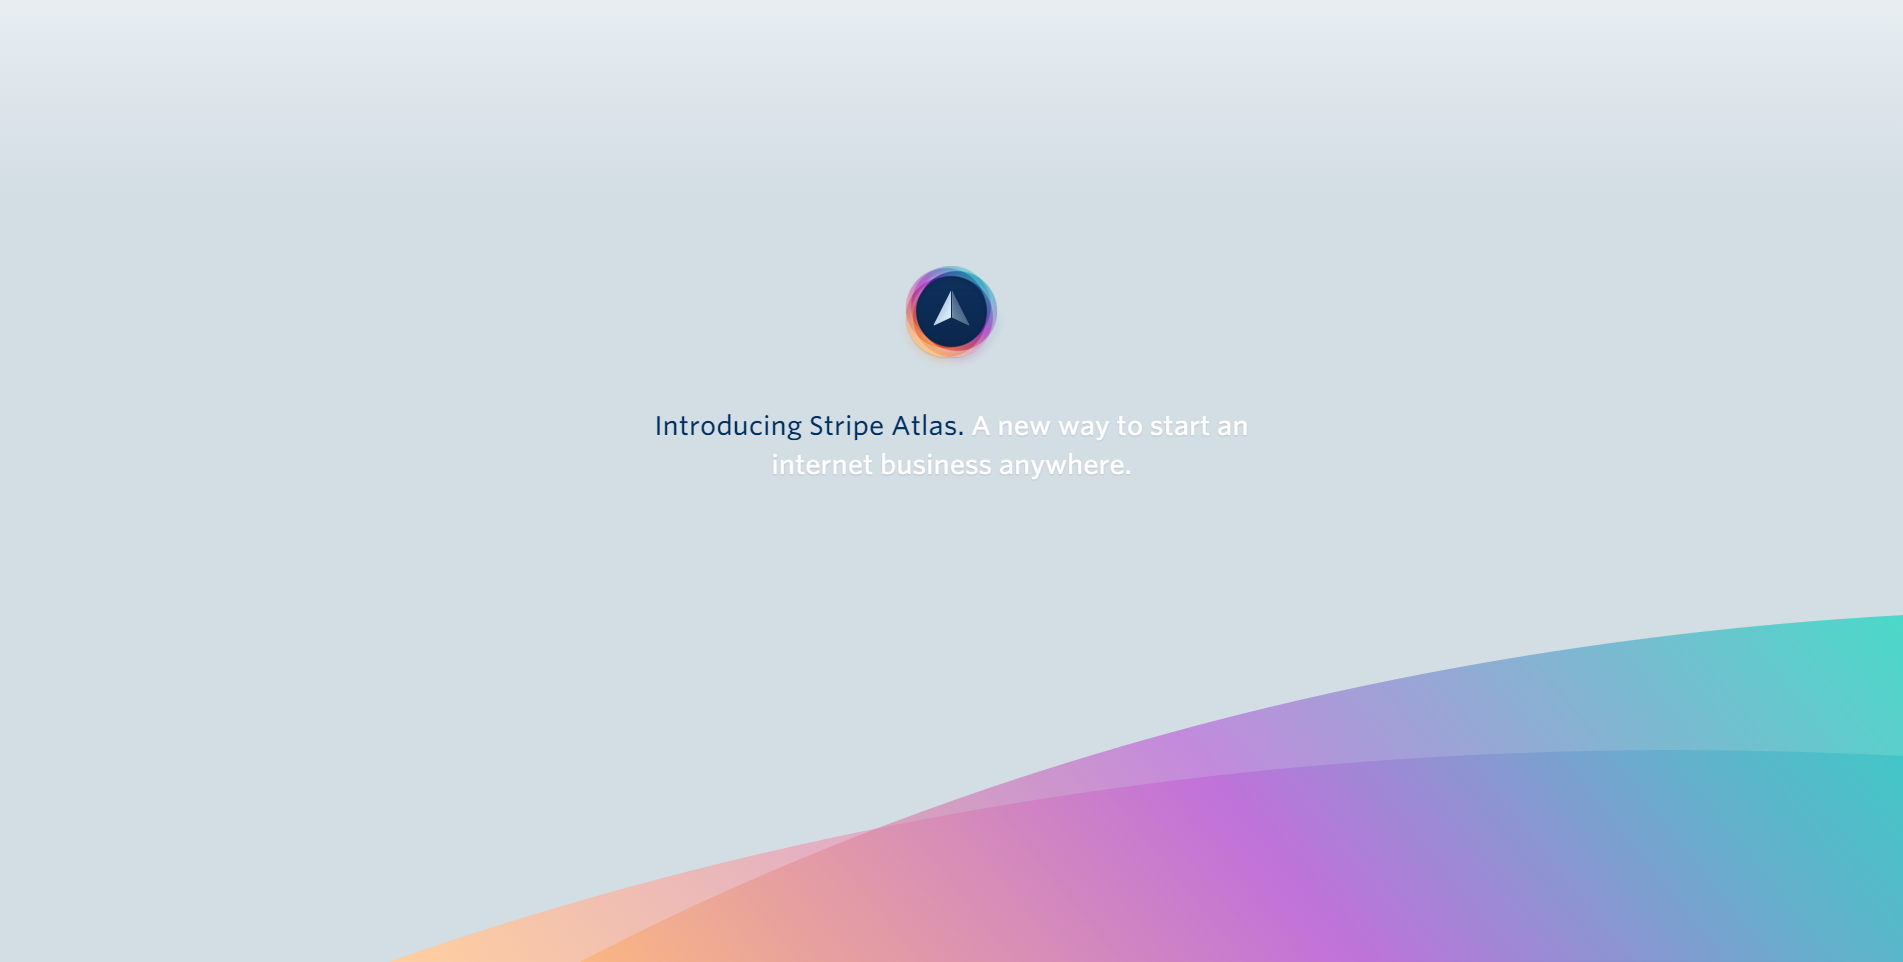 Stripe Atlas - Create a company in U.S. and a bank account in Silicon Valley in 7 days